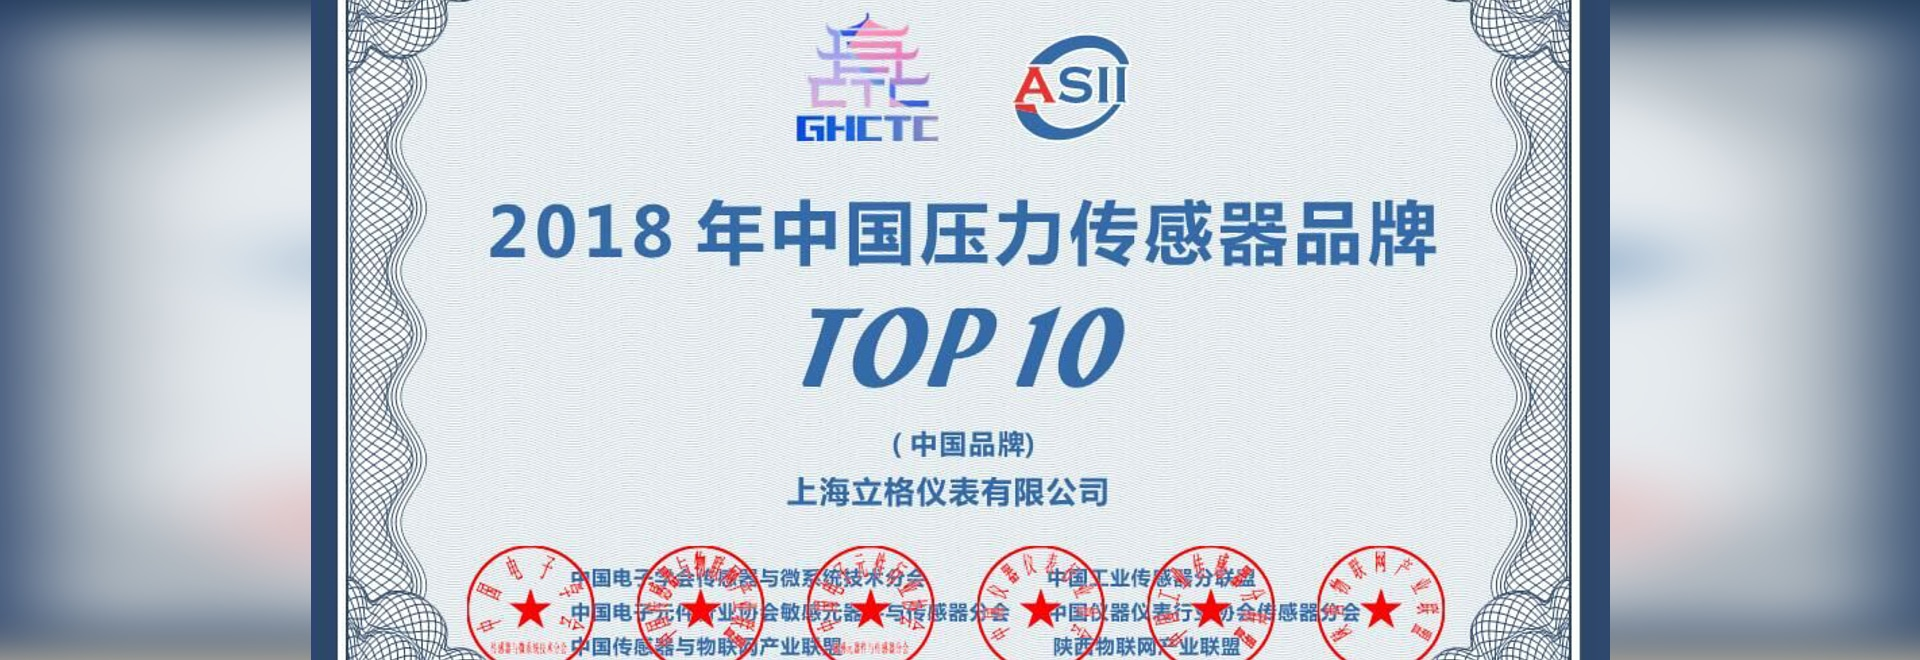 LEEG WON PRIZE FOR 2018 CHINA INDUSTRY TRANSMITTER BRAND TOP10!